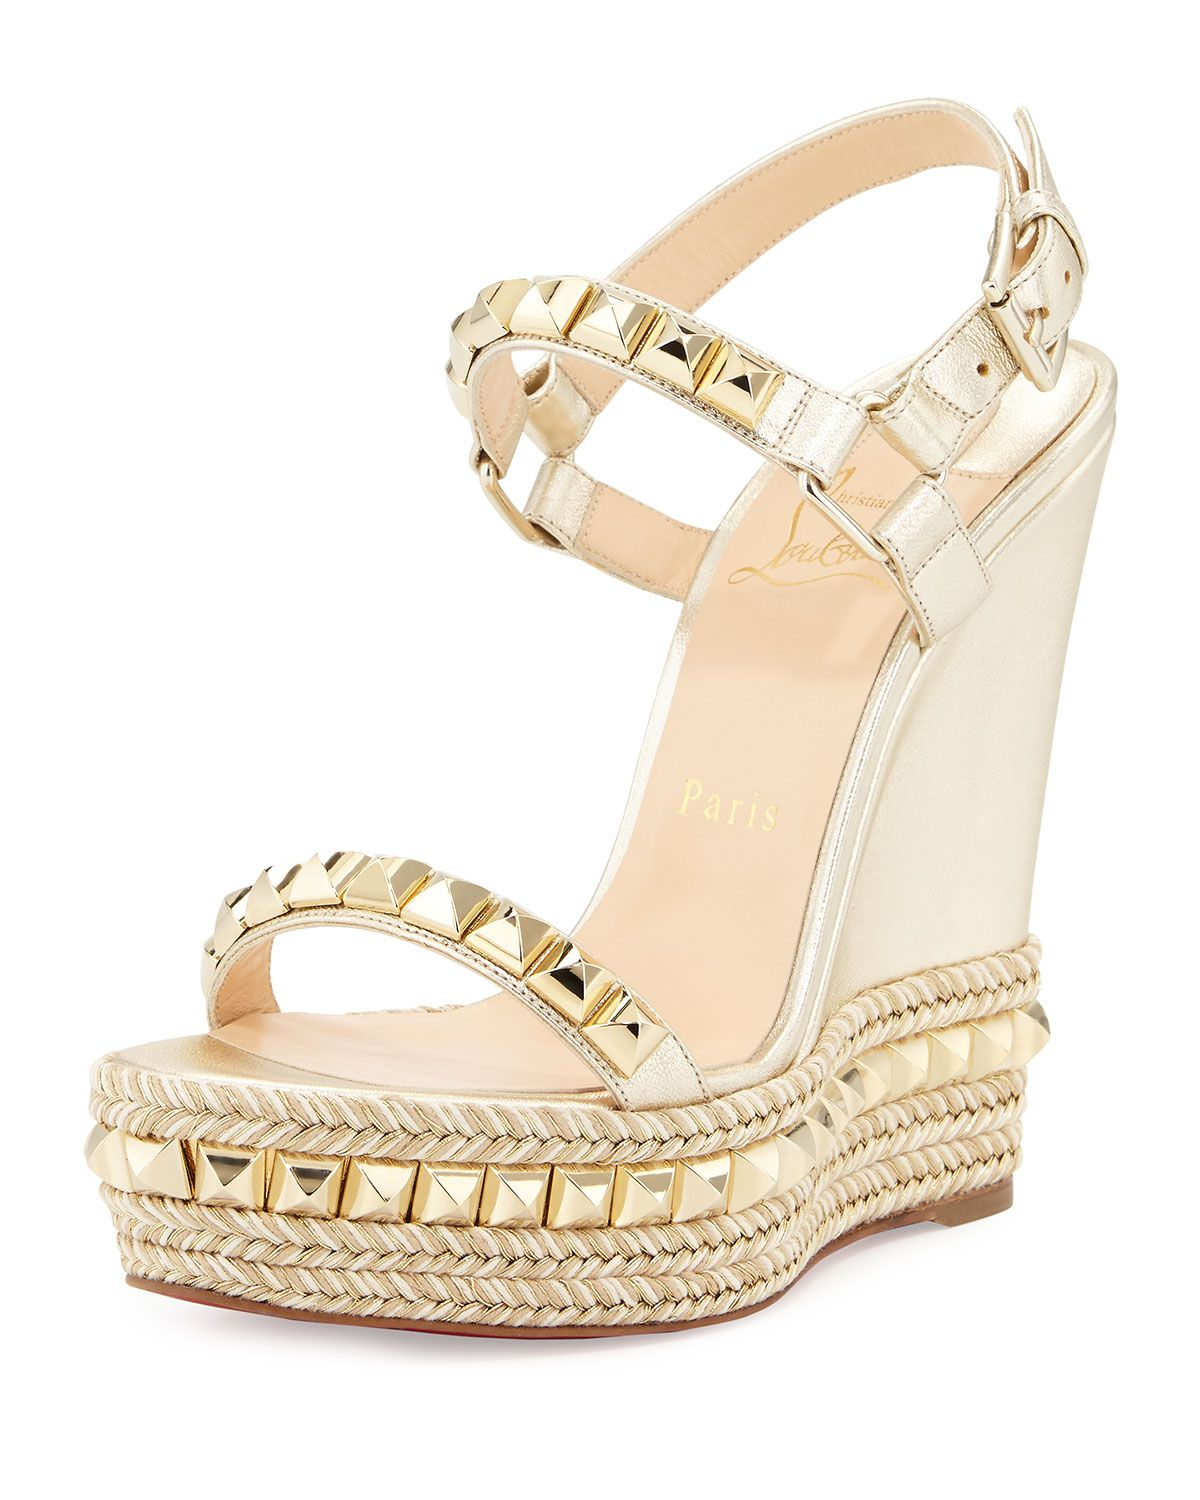 Christian Louboutin Cataclou Studded Leather Wedge Red Sole Sandal,  Sahara/Light Gold (Red